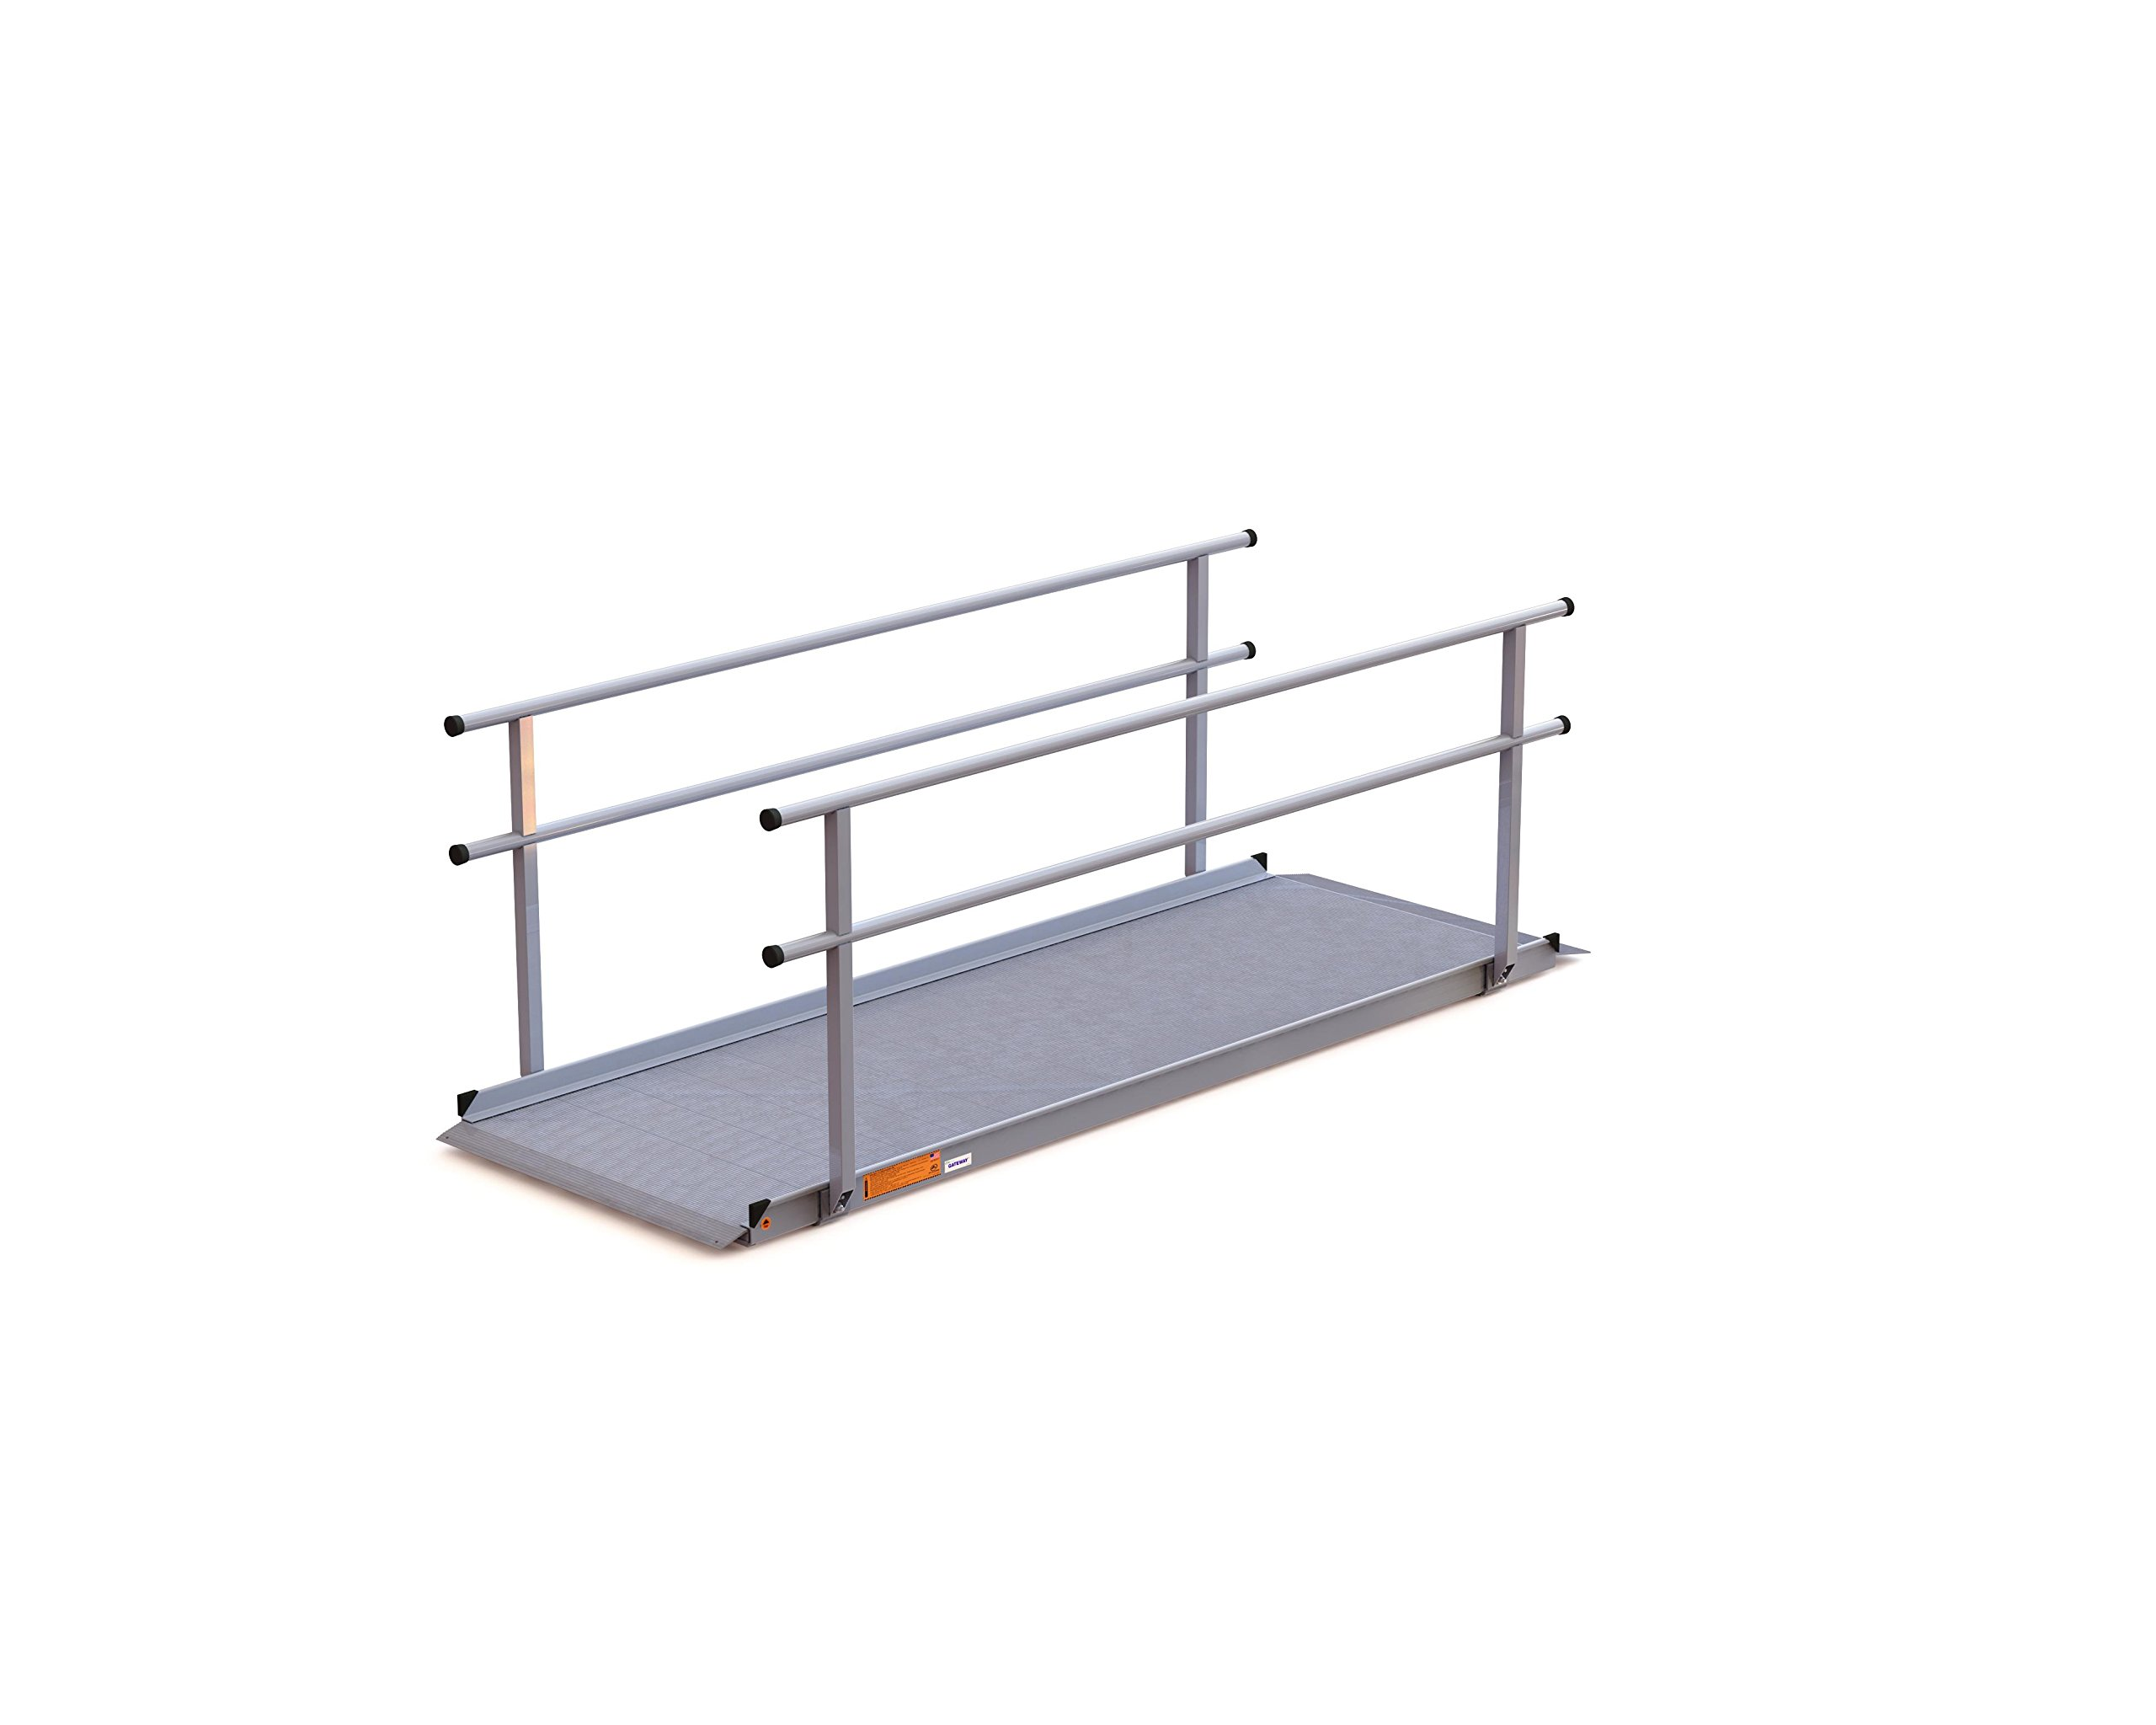 EZ-ACCESS Gateway Ramp with Handrails, 9 Feet